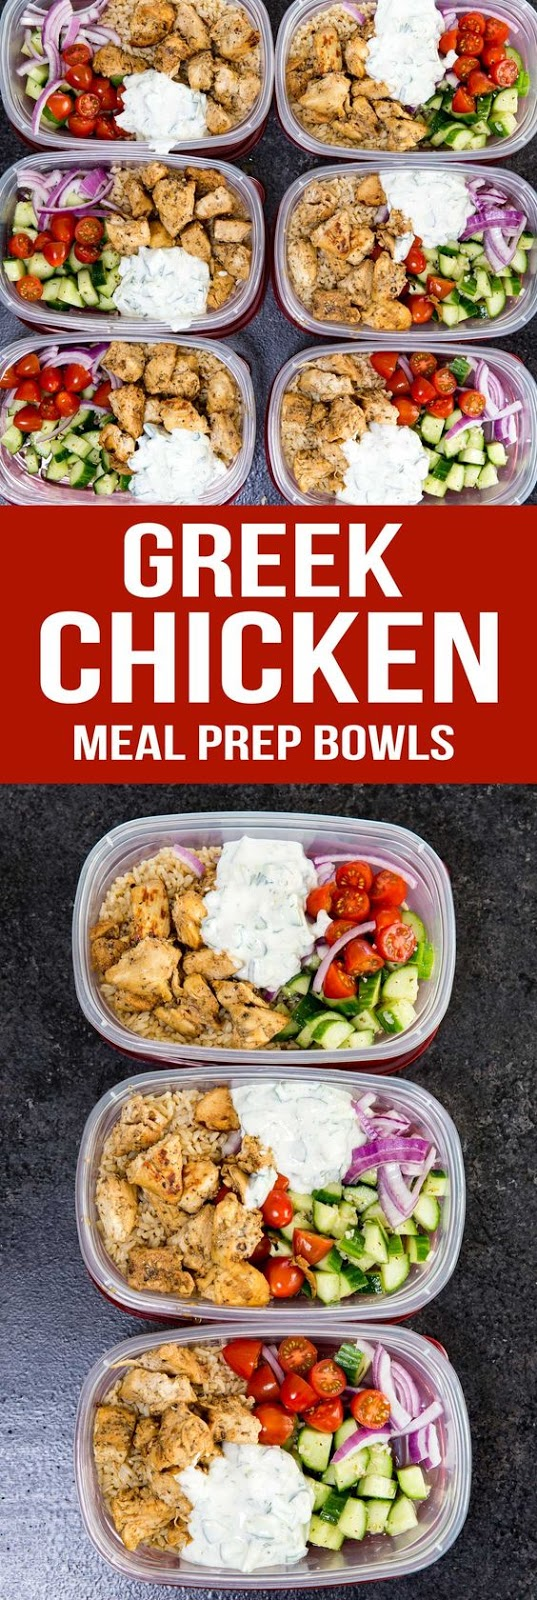 Greek Chicken Bowls (Meal Prep Easy) #greek #chicken #chickenrecipes #mealprep #easyrecipes #healthyfood #healthyrecipes #healthymeals